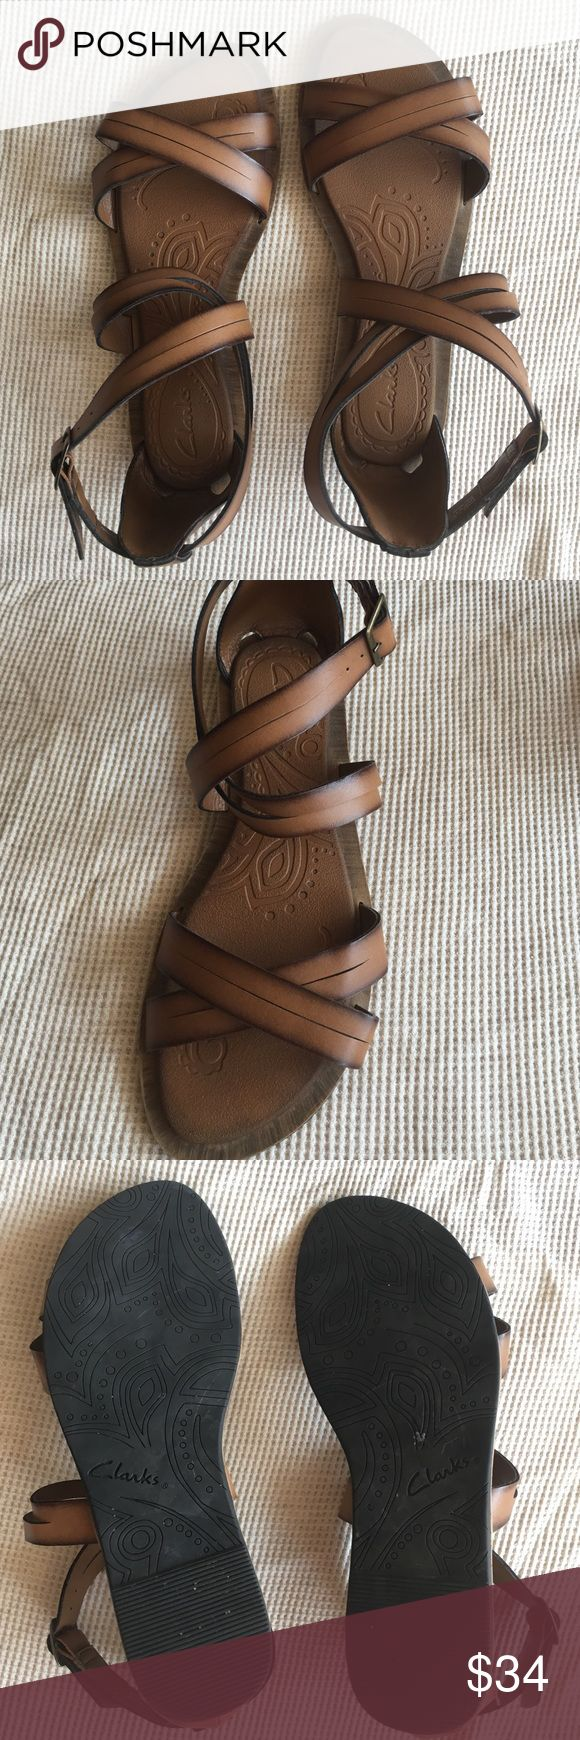 Clarks sandals Clarks sandals. Worn once. Look brand new. Clarks Shoes Sandals